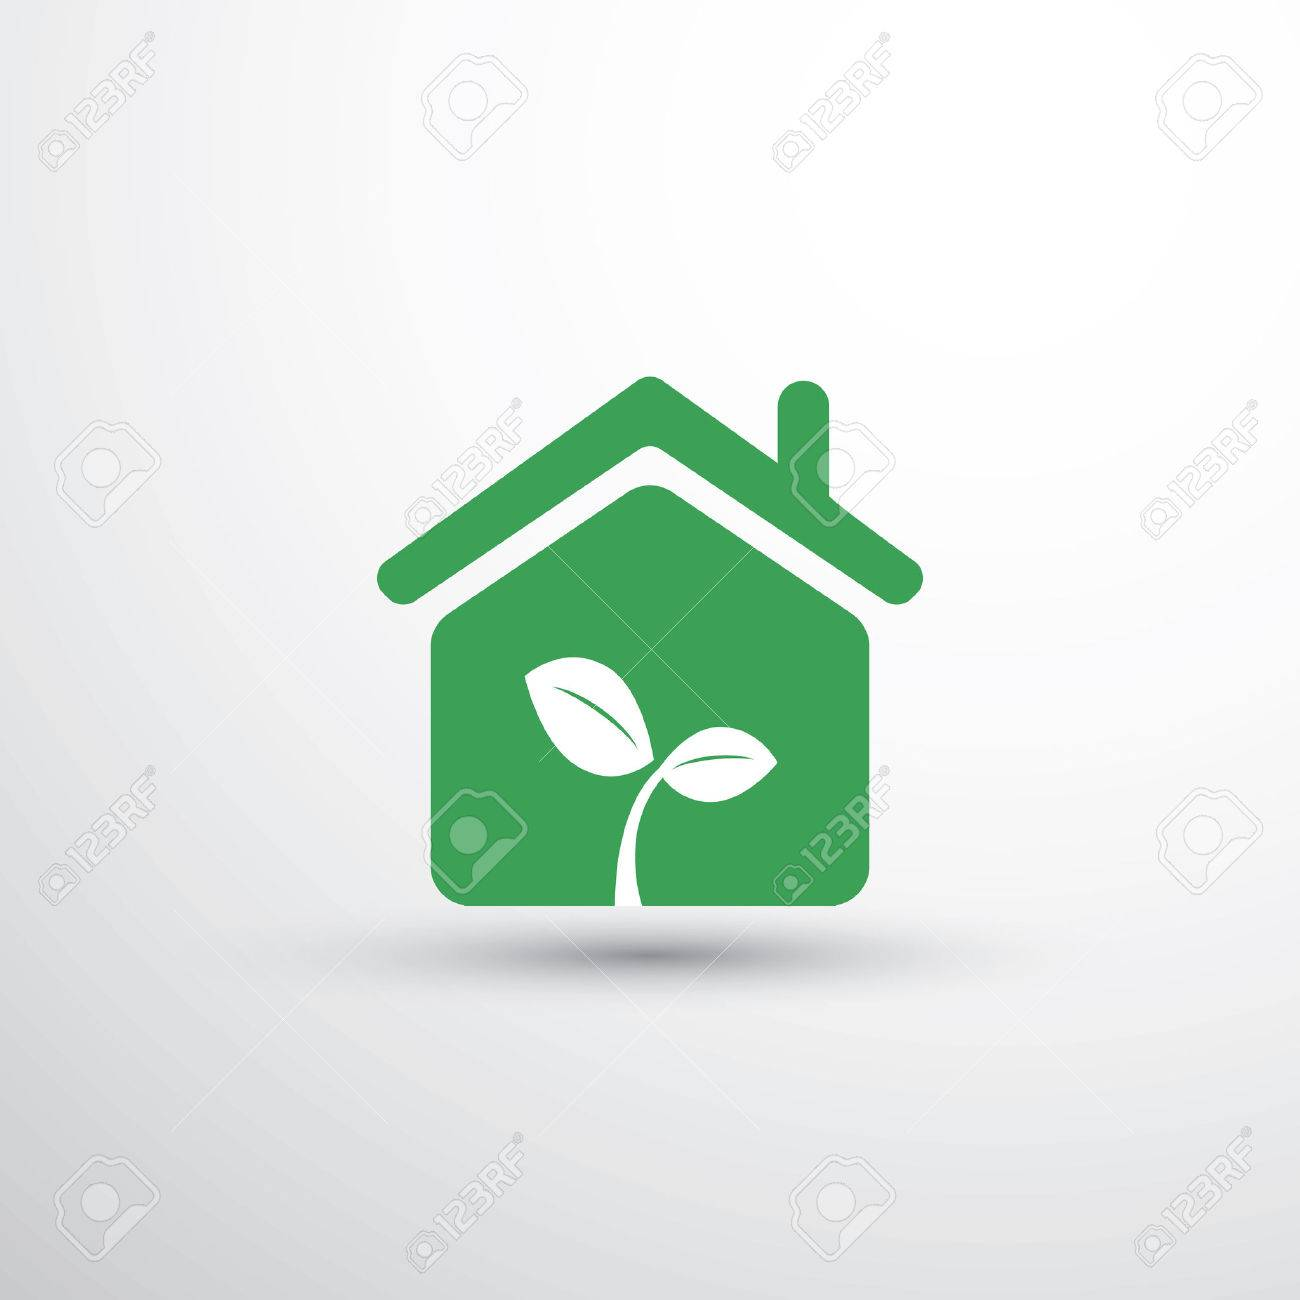 Eco house home concept design house icon with leaves stock vector 55397729